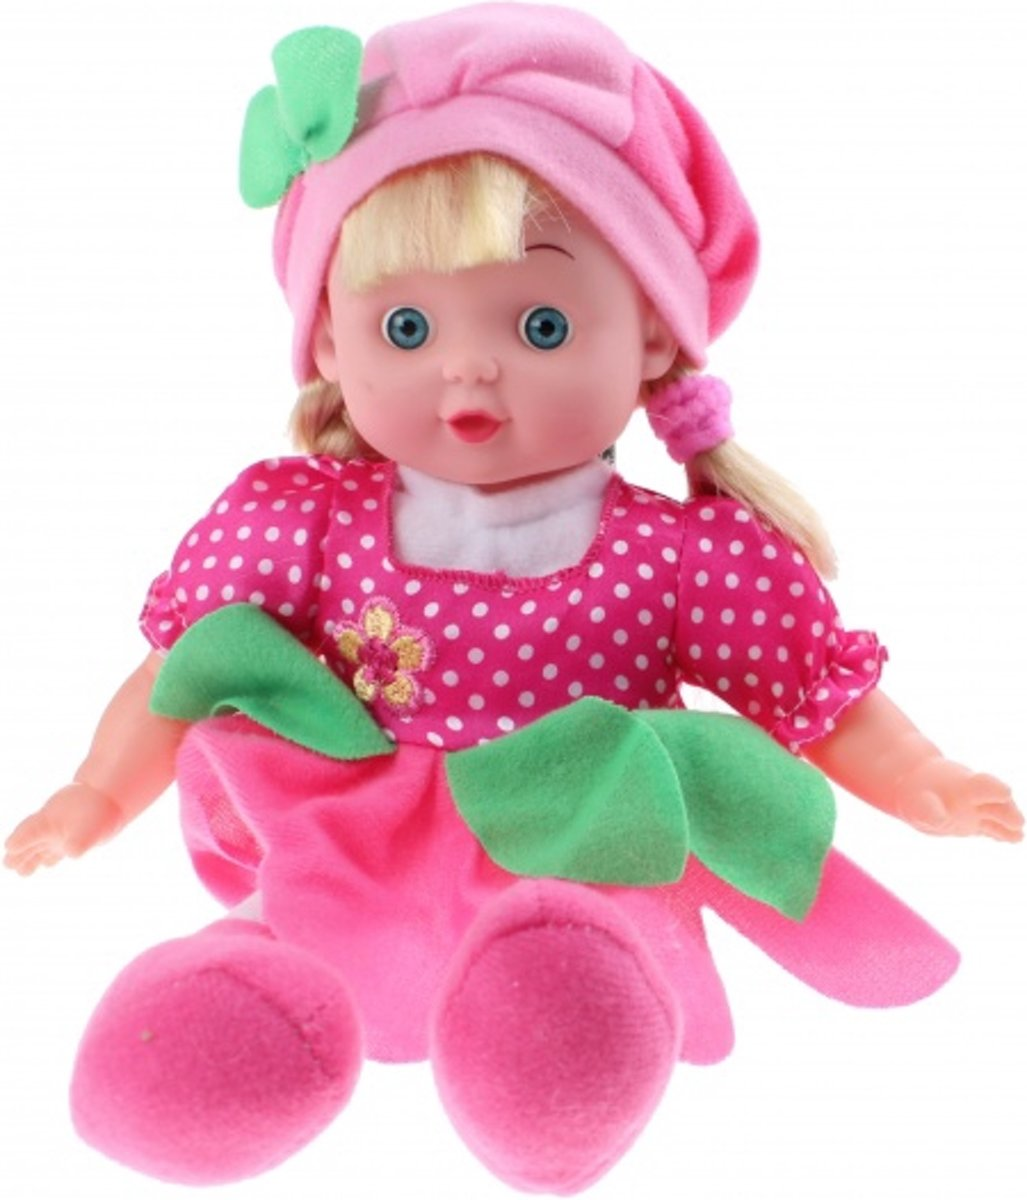 Johntoy Baby Rose Pop 30 Cm